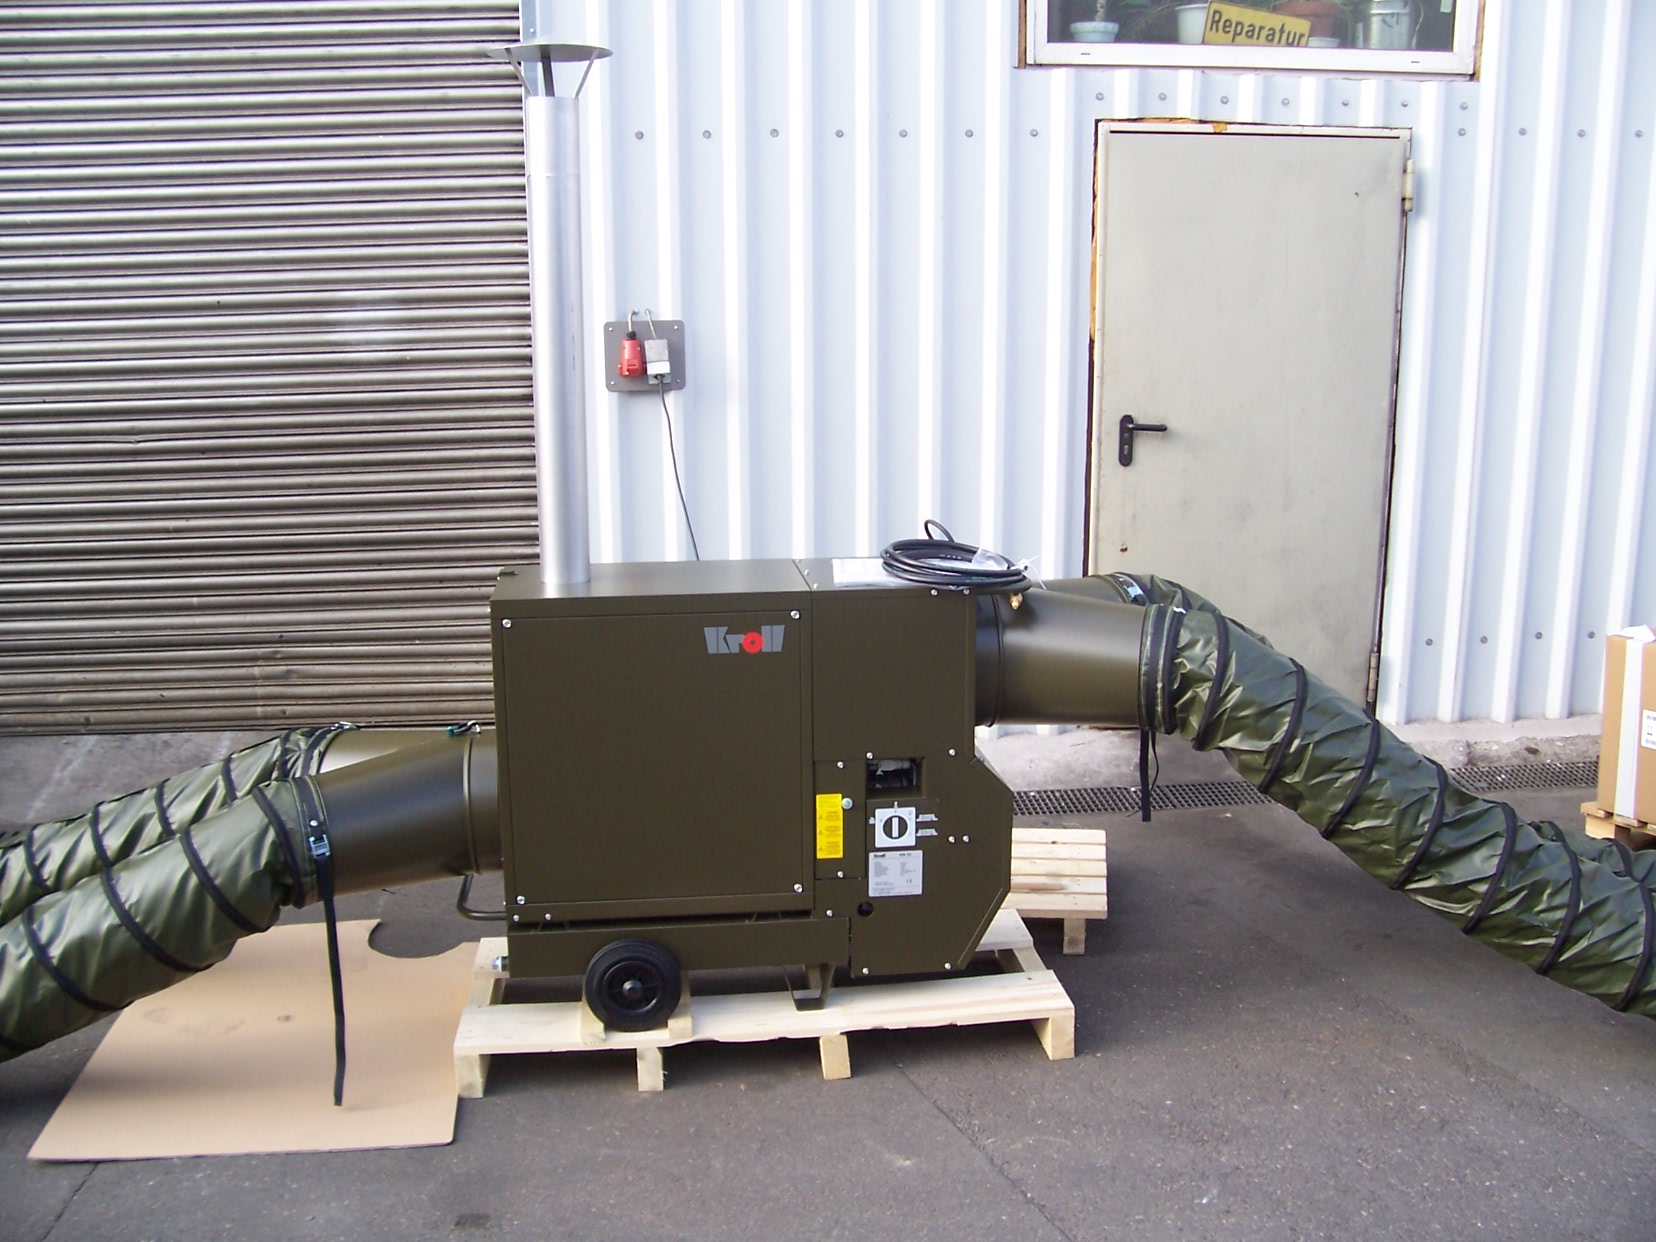 #846847 Military Grade Warm Air Mobile Heaters Flexiheat UK Ltd Best 7133 Warm Air Heating Ducts photos with 1656x1242 px on helpvideos.info - Air Conditioners, Air Coolers and more